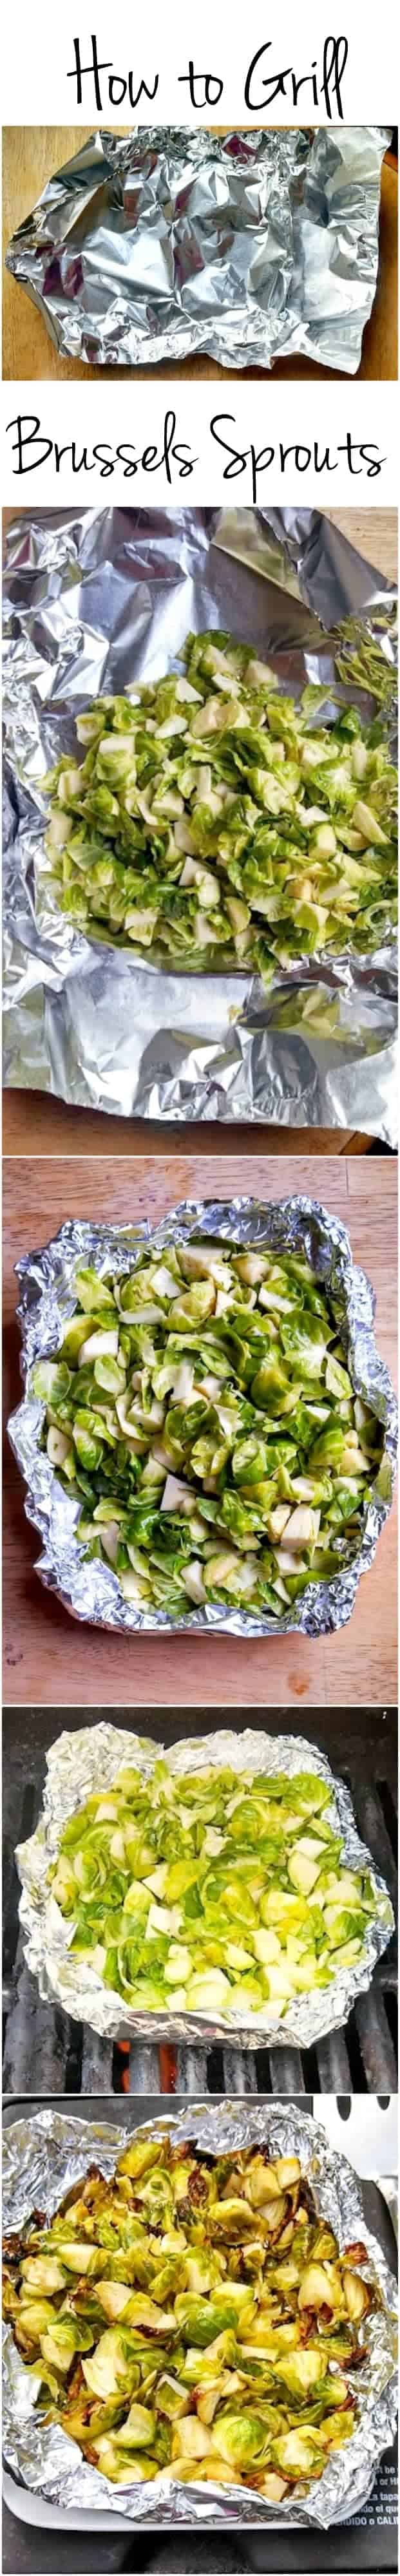 How to Grill Brussels Sprouts (or pretty much any vegetable) -- a recipe with no skewers (or skill) required.